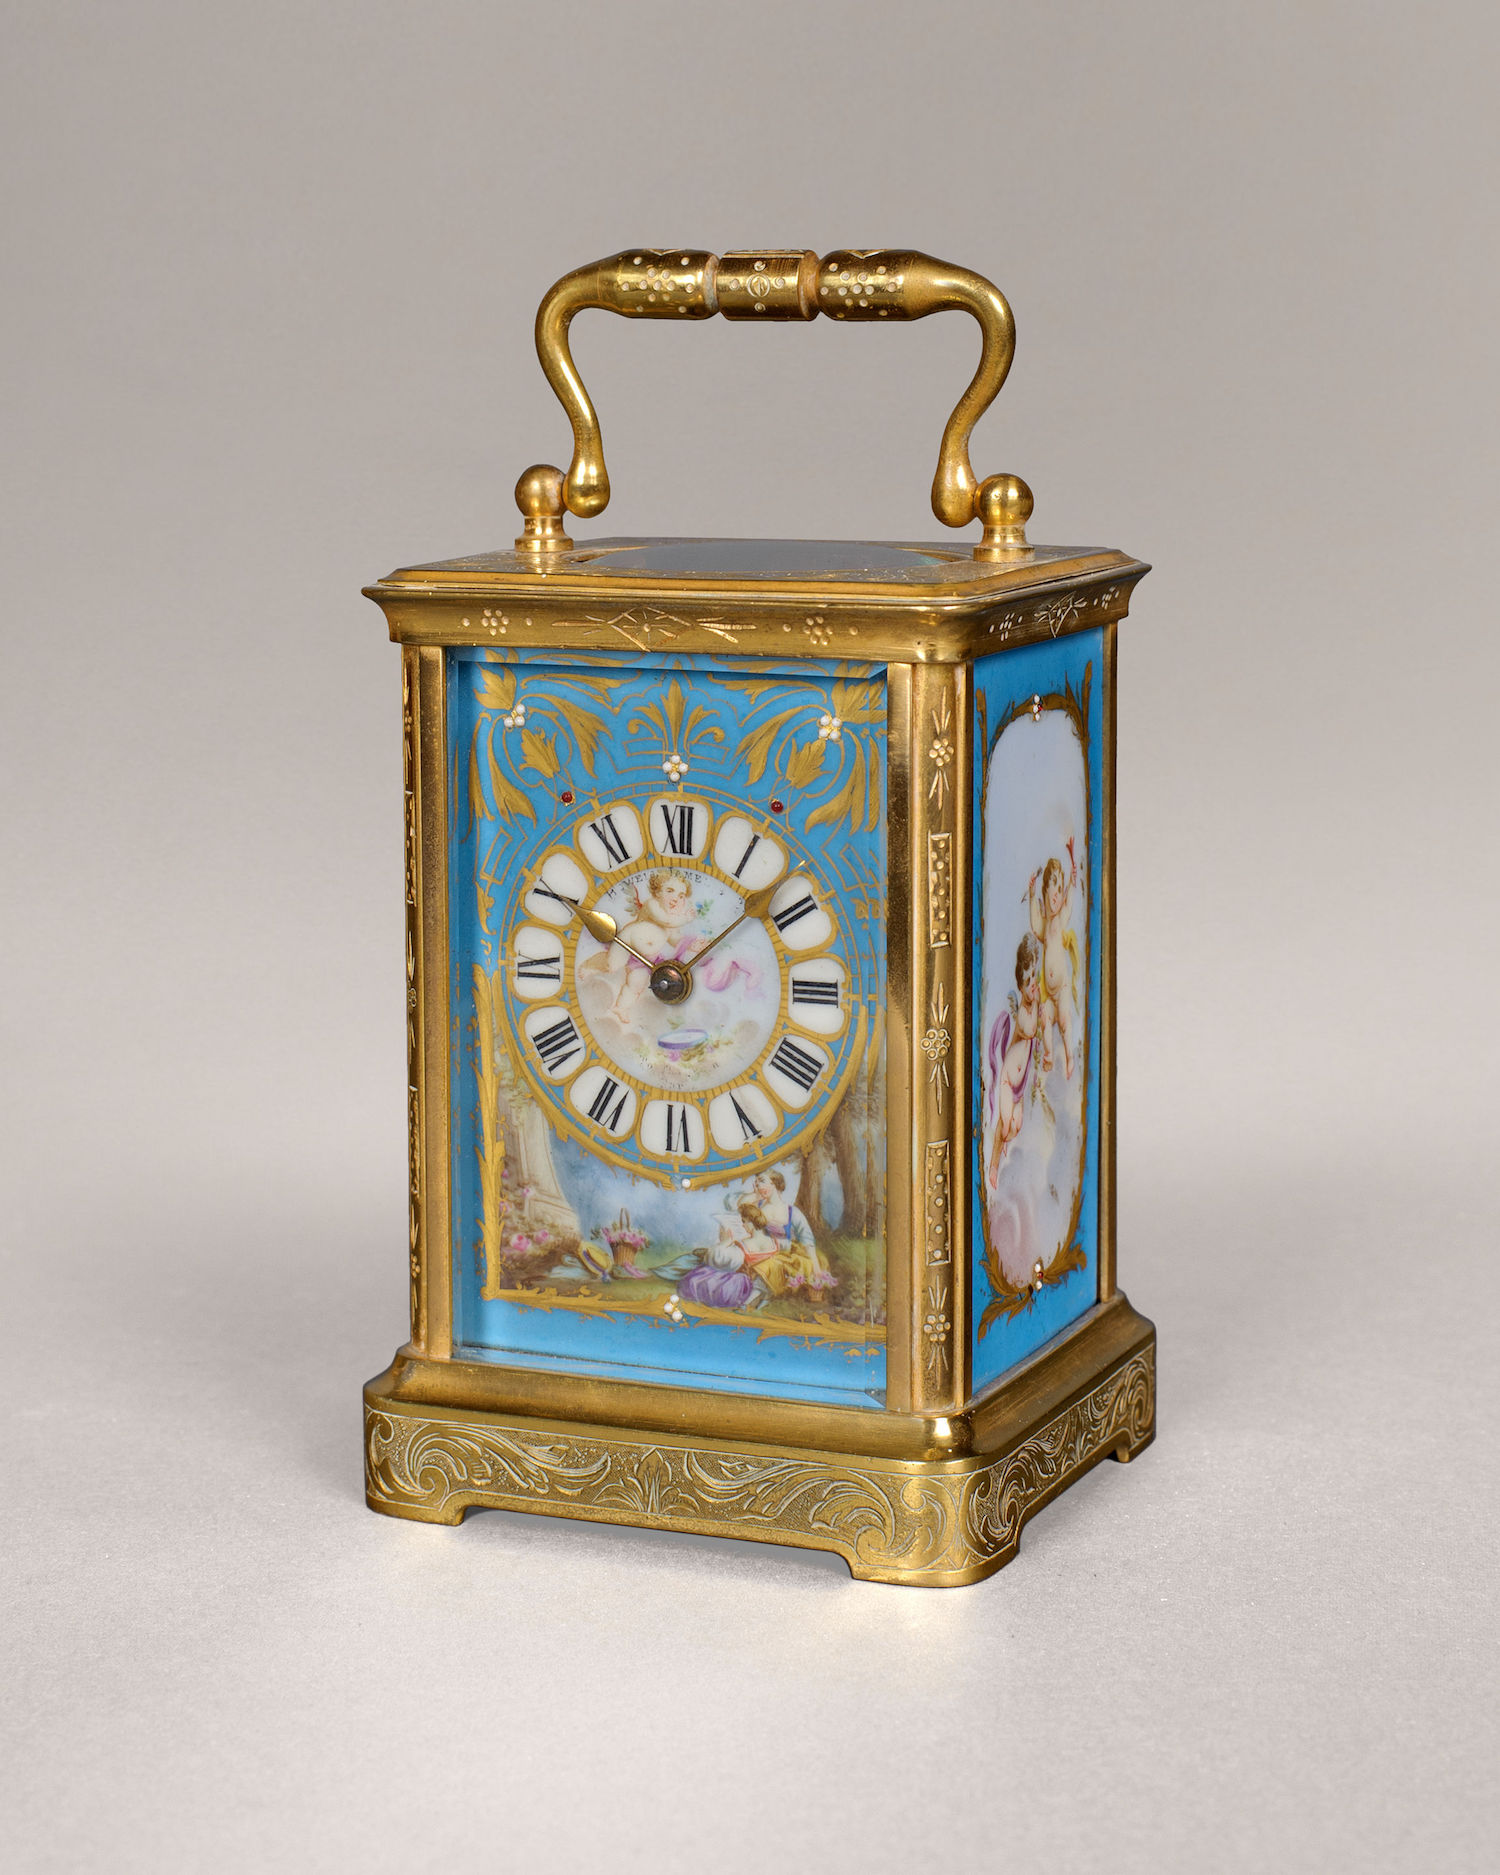 A GOOD BLEU DE CIEL PORCELAIN PANELLED CARRIAGE TIMEPIECE